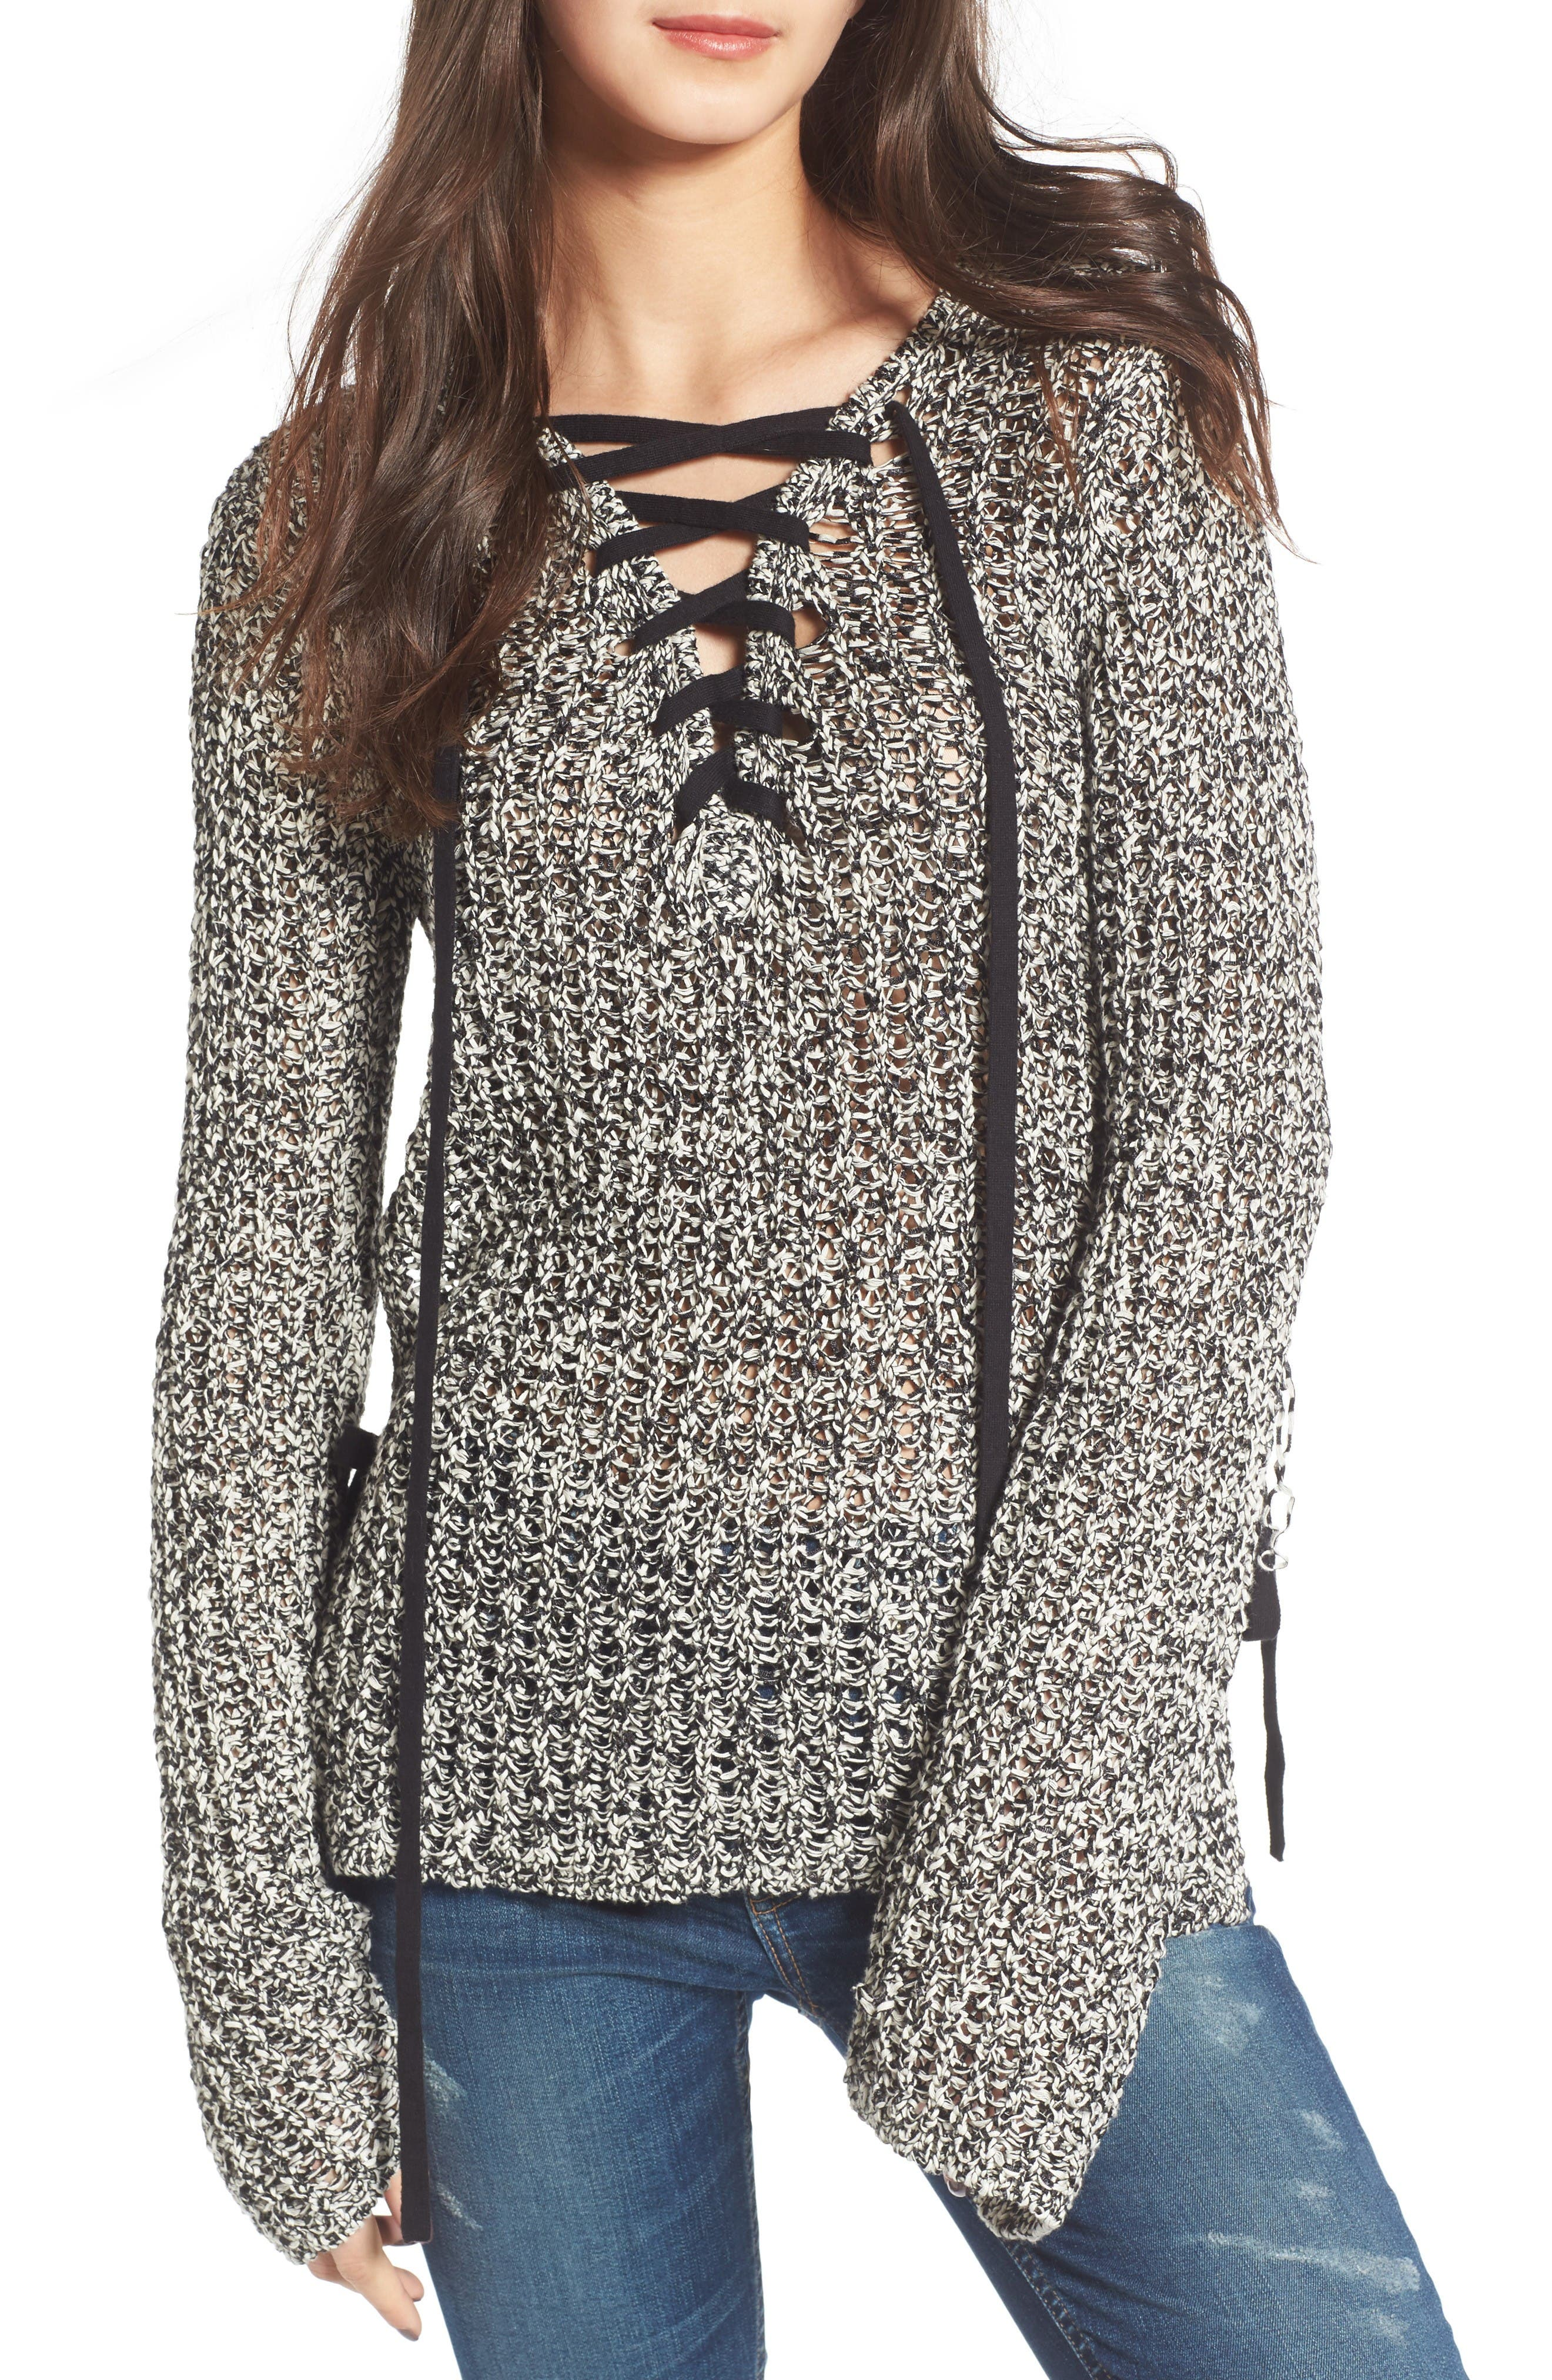 Main Image - Pam & Gela Lace-Up Sweater